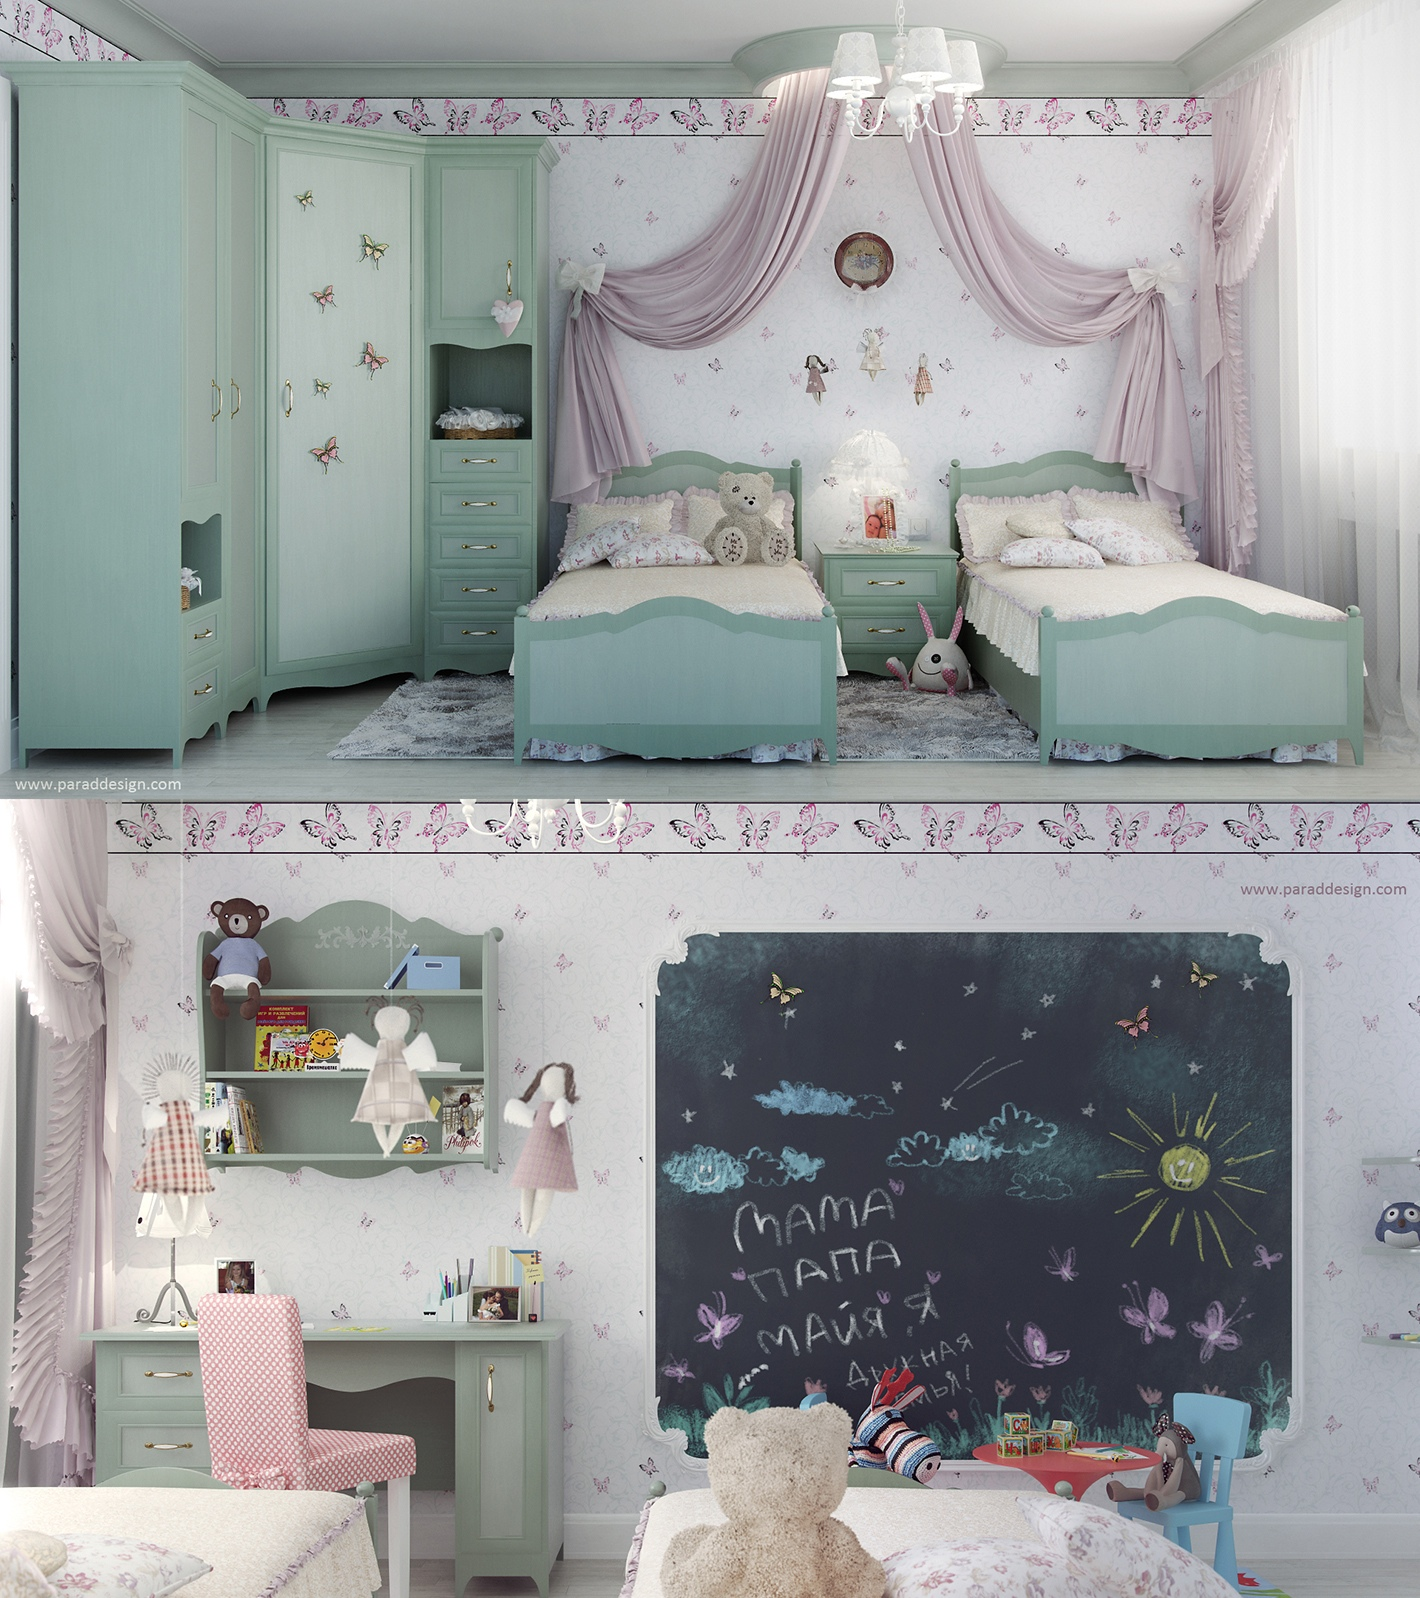 http://www.home-designing.com/wp-content/uploads/2013/02/2-little-girls-bedroom-7.jpeg